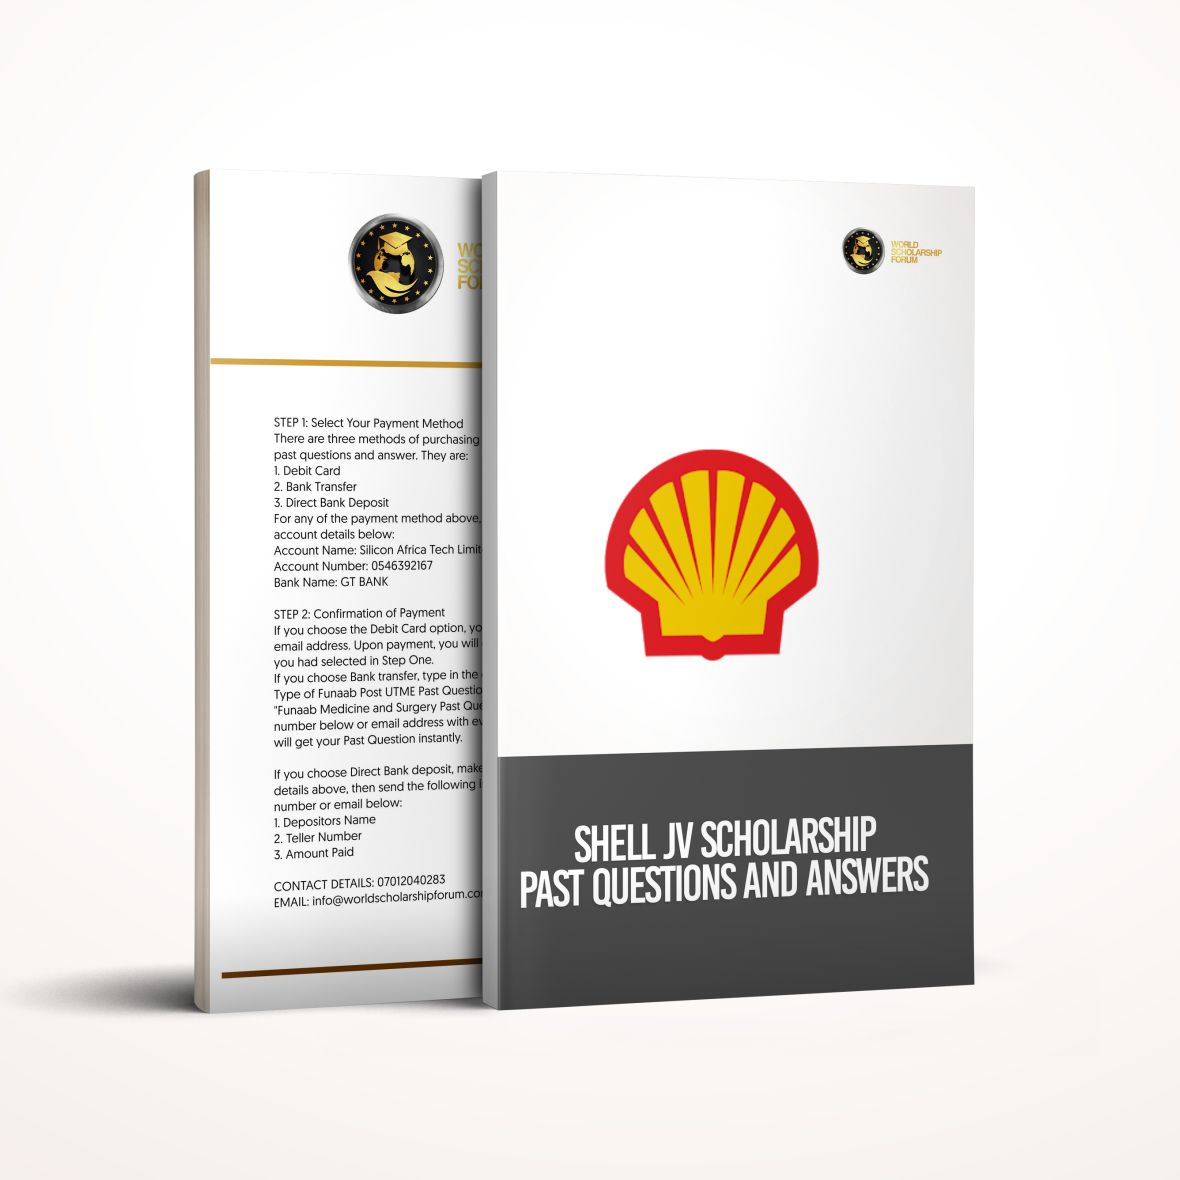 Shell Undergraduate Scholarship Past Questions and Answers